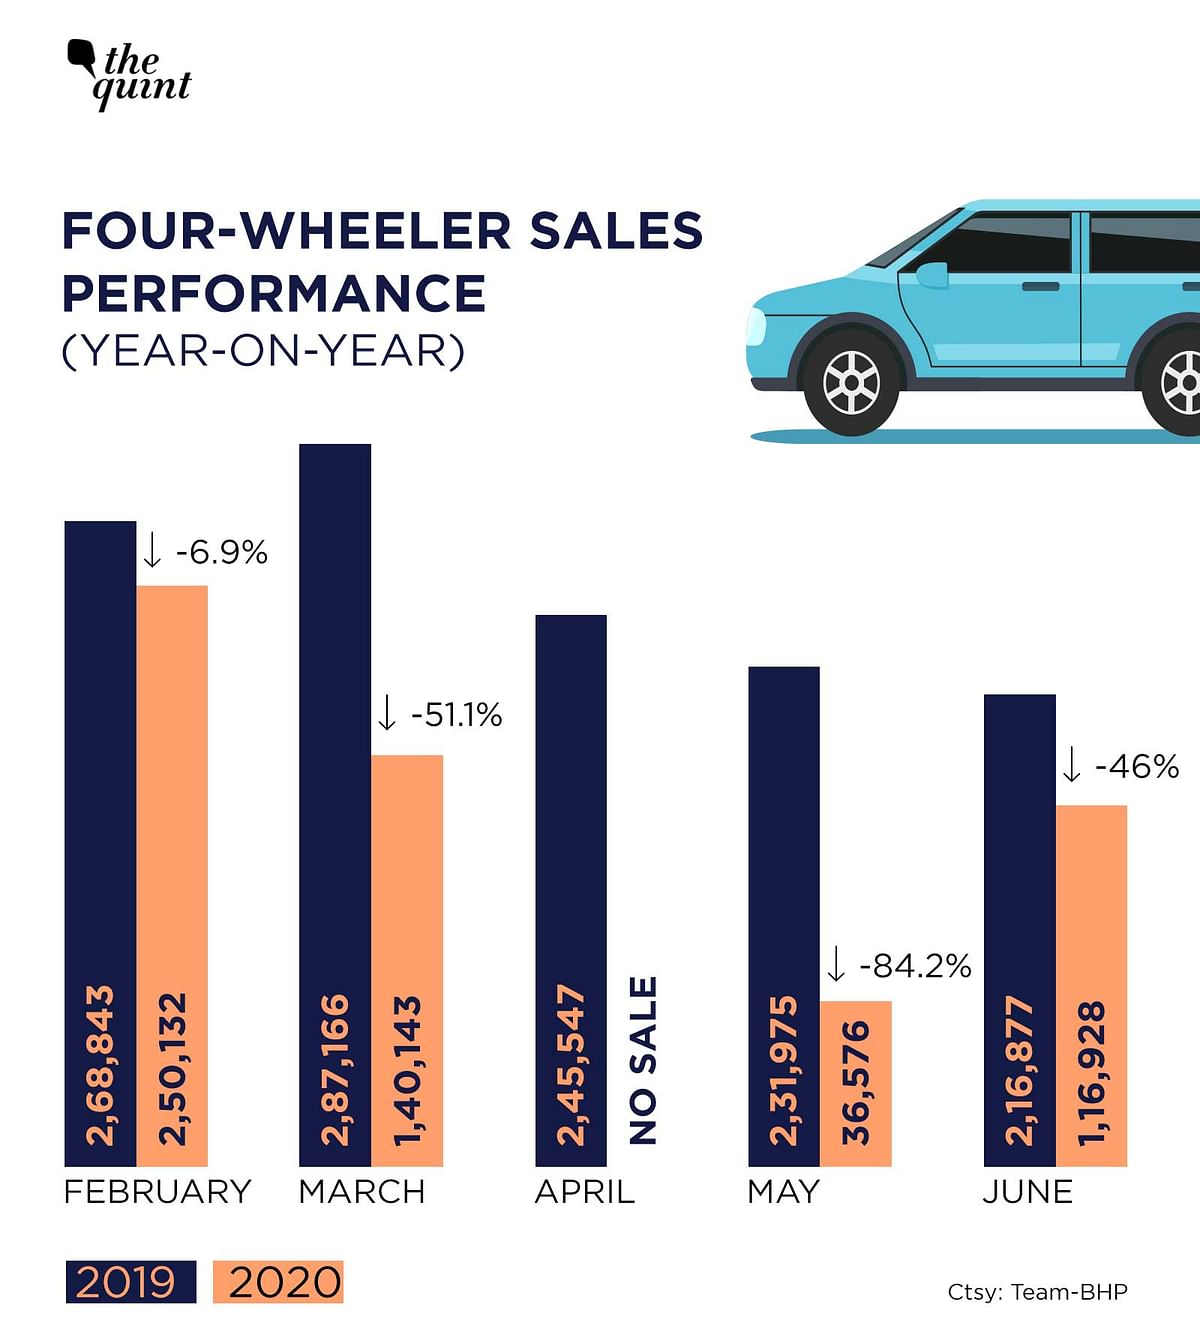 Monthly year-on-year passenger vehicles sales for 2019-2020 post lockdown.